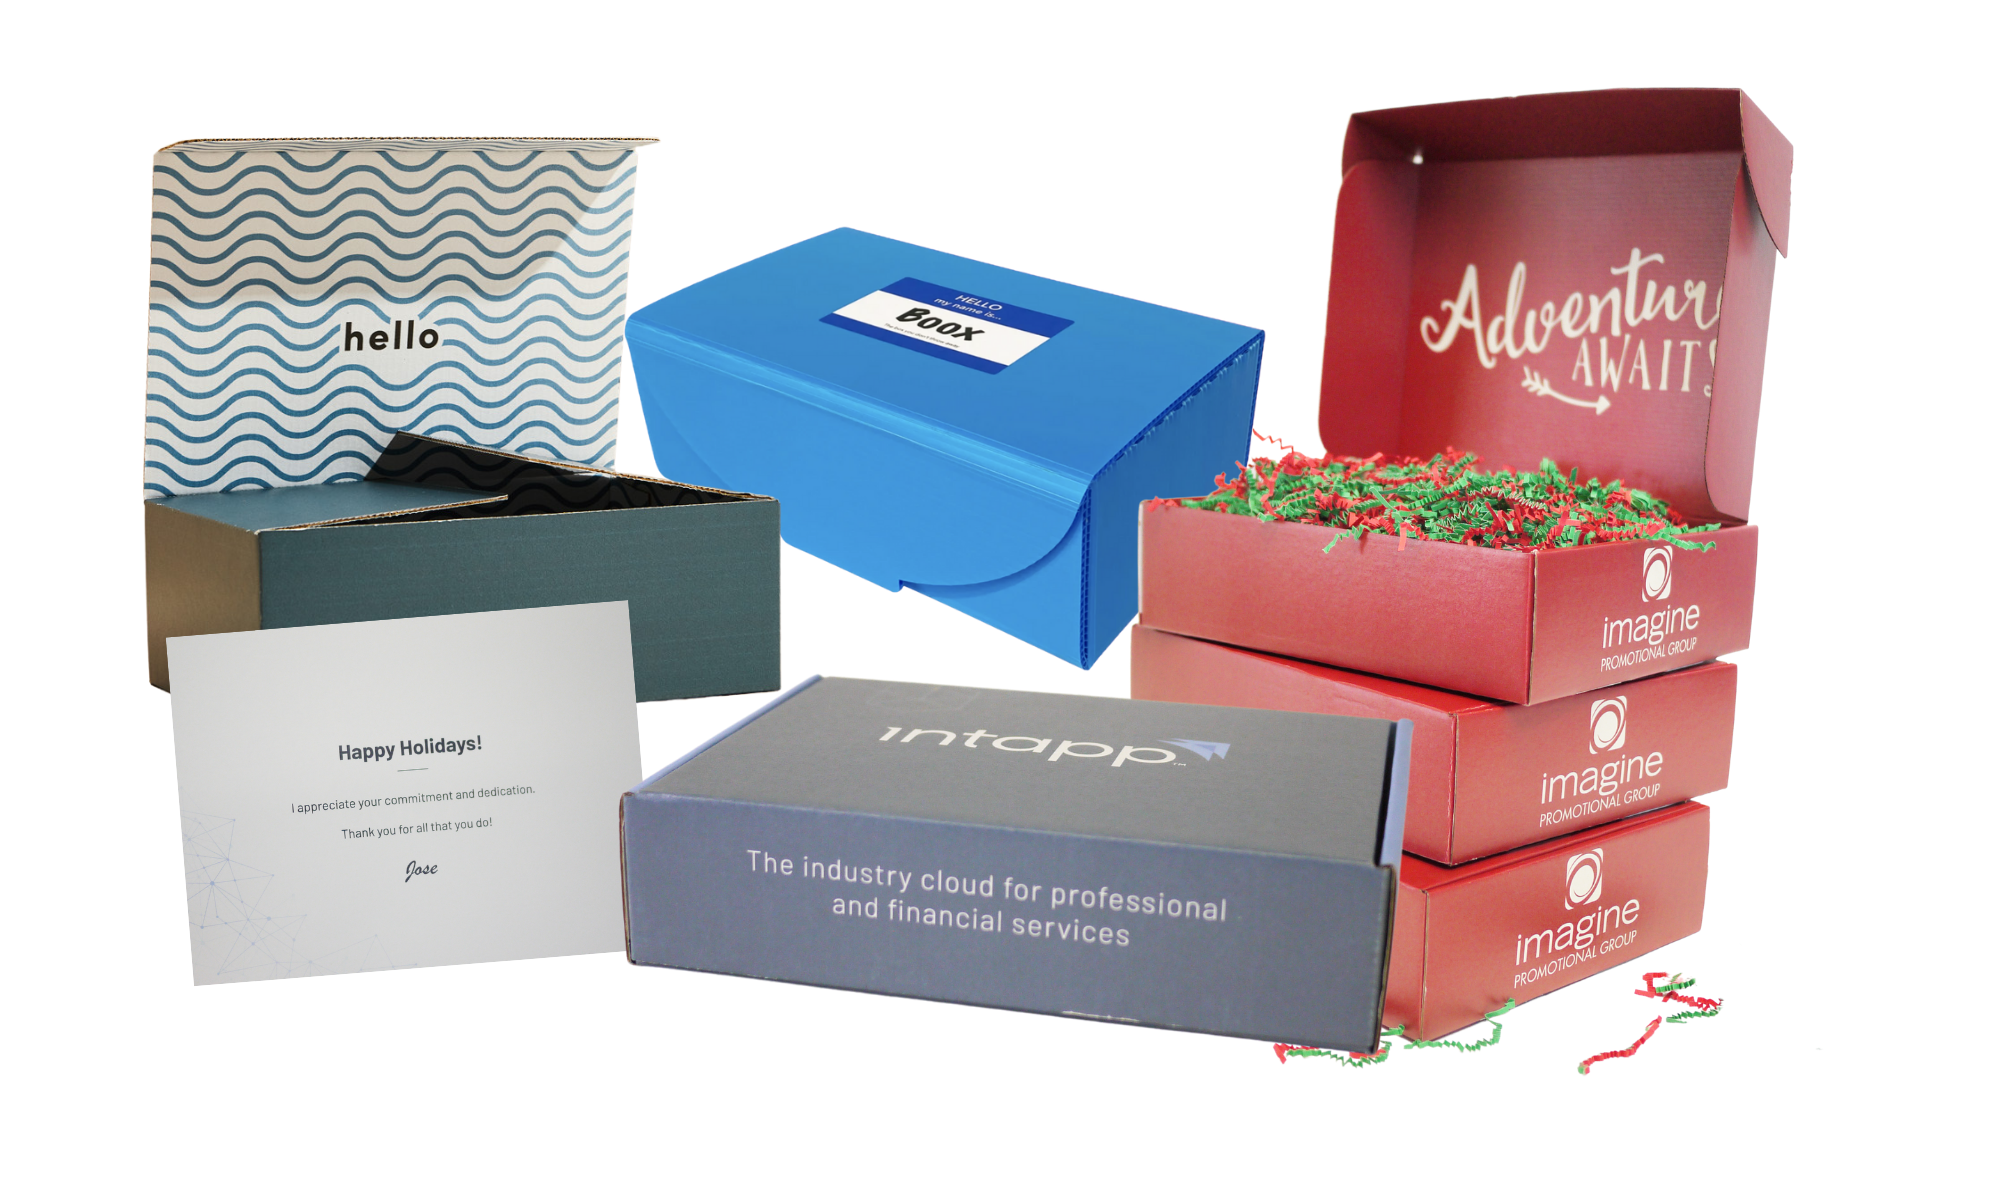 IPG offers branded logo packaging and boxes